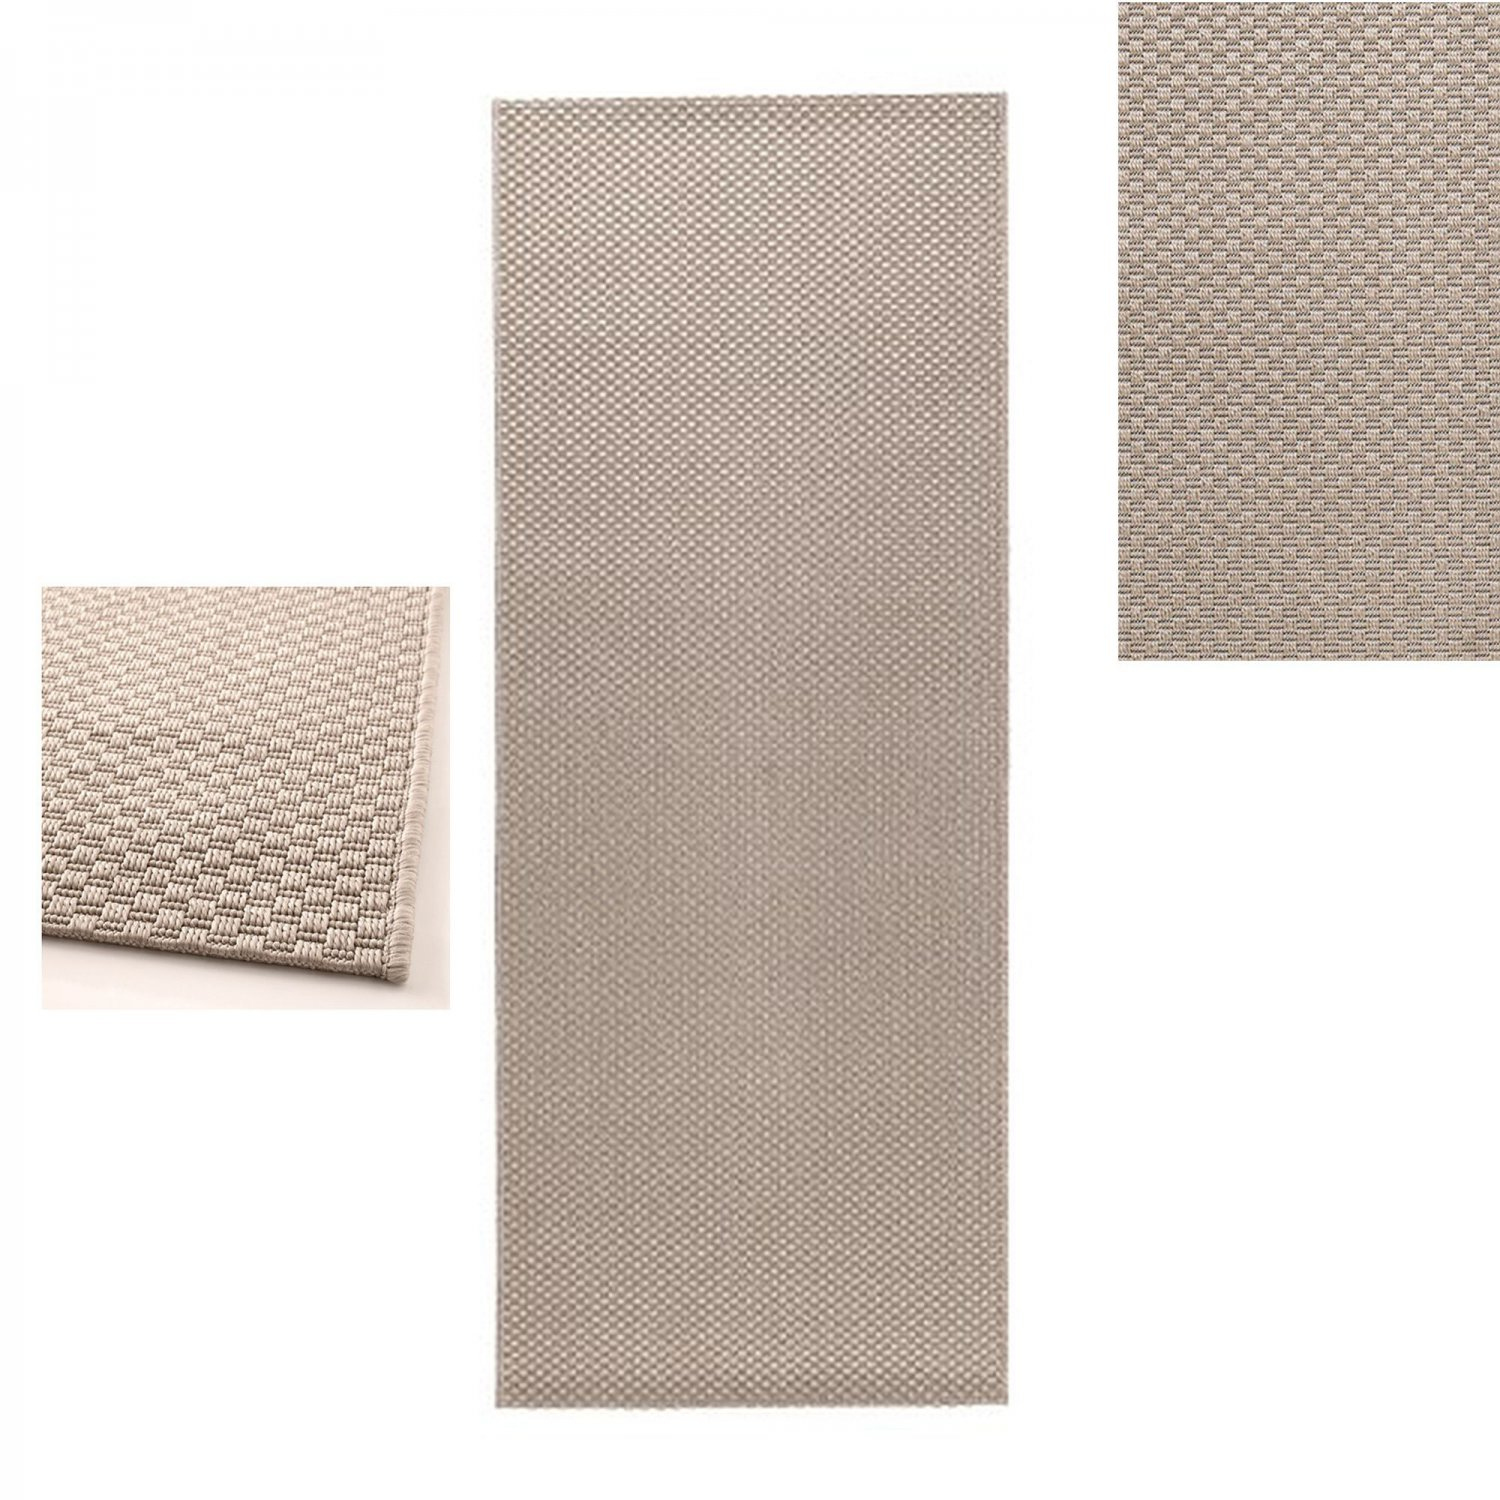 Ikea morum indoor outdoor area rug runner carpet beige for Indoor outdoor runners rugs